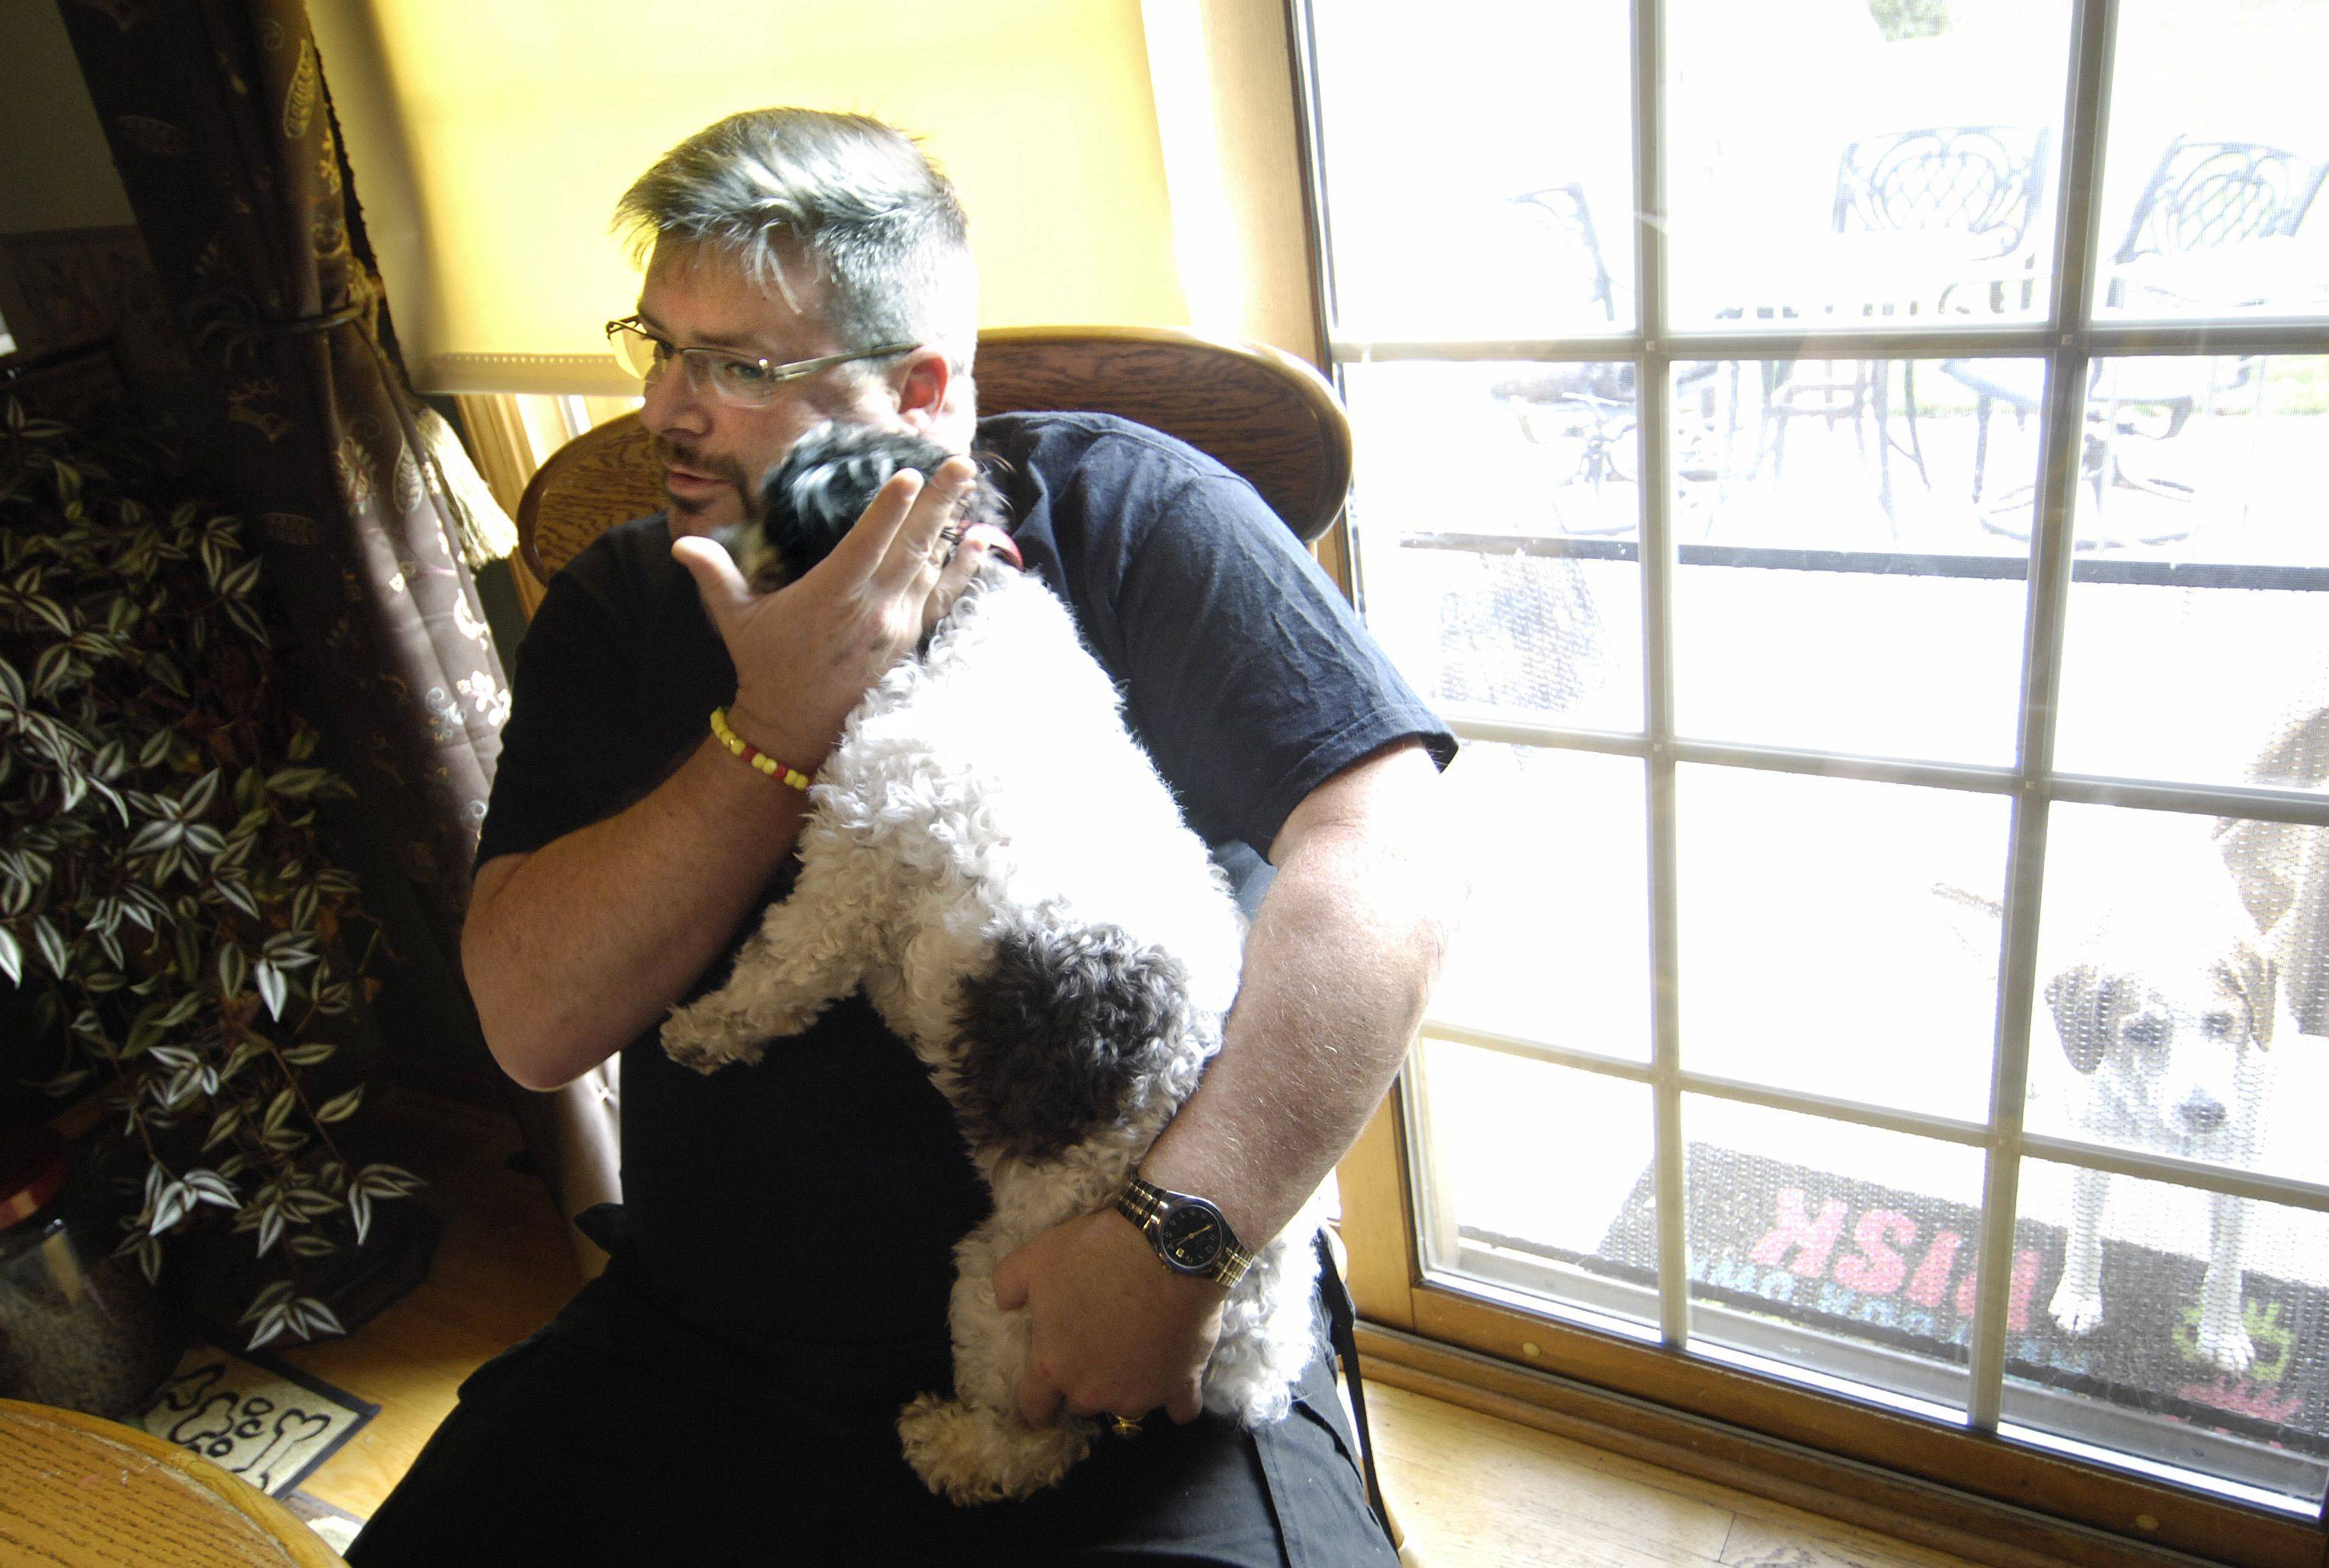 Dan Sauer, holds his service dog, Chloe, in his Hampshire home. Sauer is a Desert Storm veteran living with PTSD.